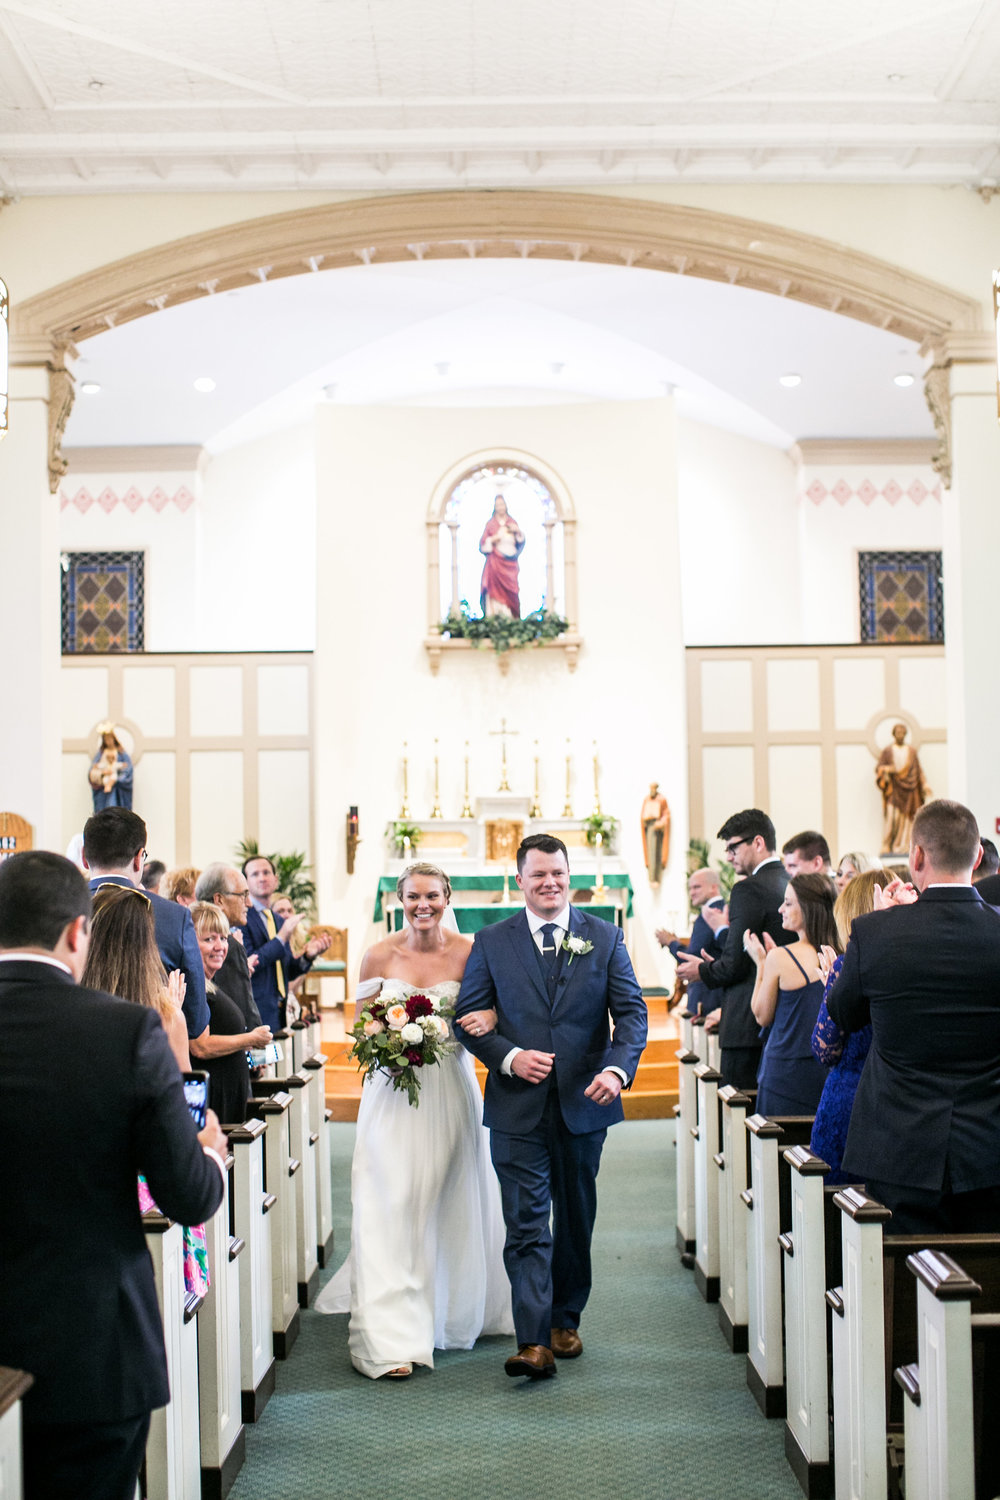 E+AMtSt.PaulsChurchWeddingWashingtonDyeHouseWeddingLivingRadiantPhotographyphotos-640.jpg